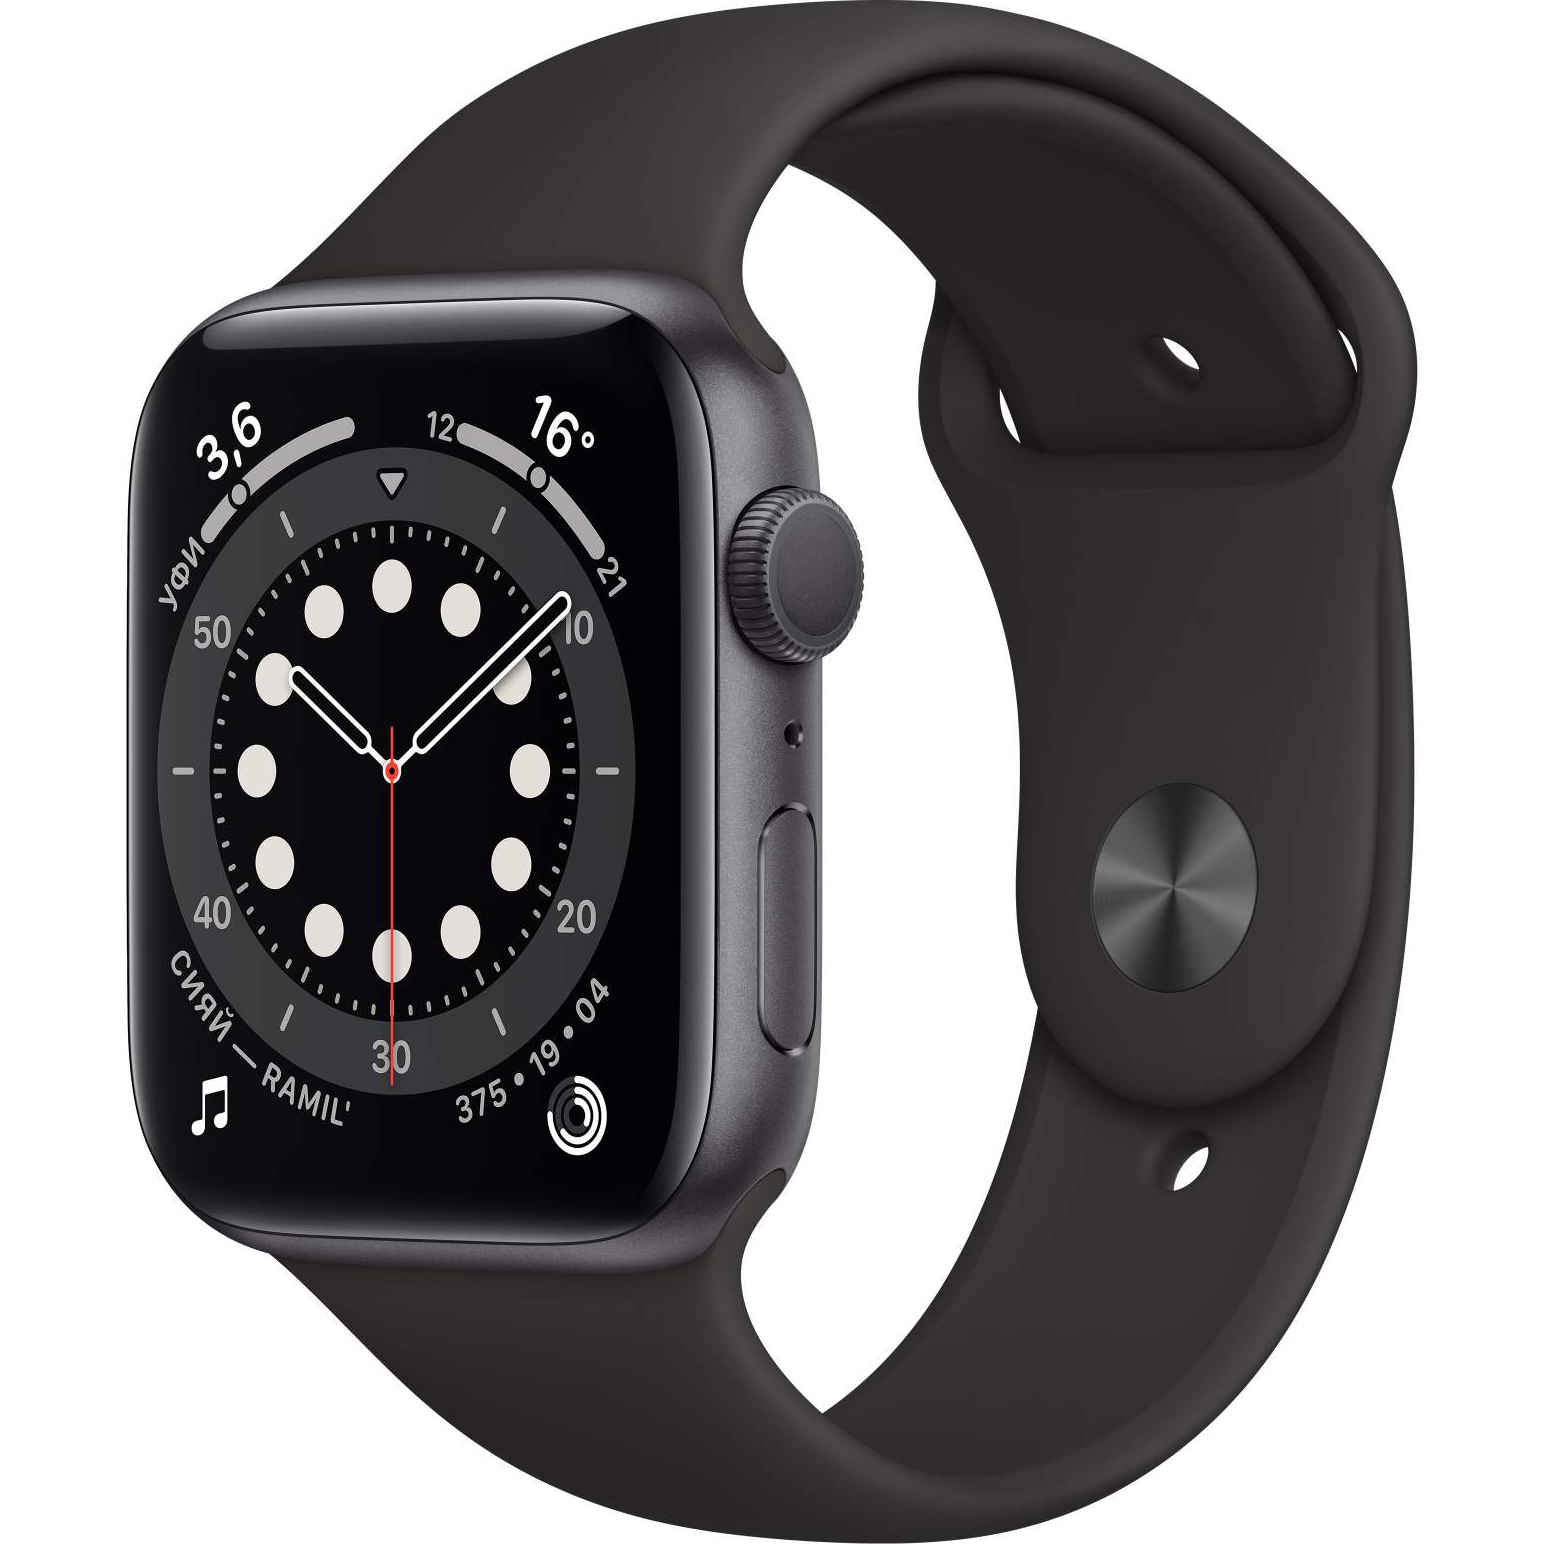 Смарт-часы Apple Watch 6 GPS 44мм Space Gray M00H3RU/A смарт часы apple watch series 6 40 мм золотой mg123ru a